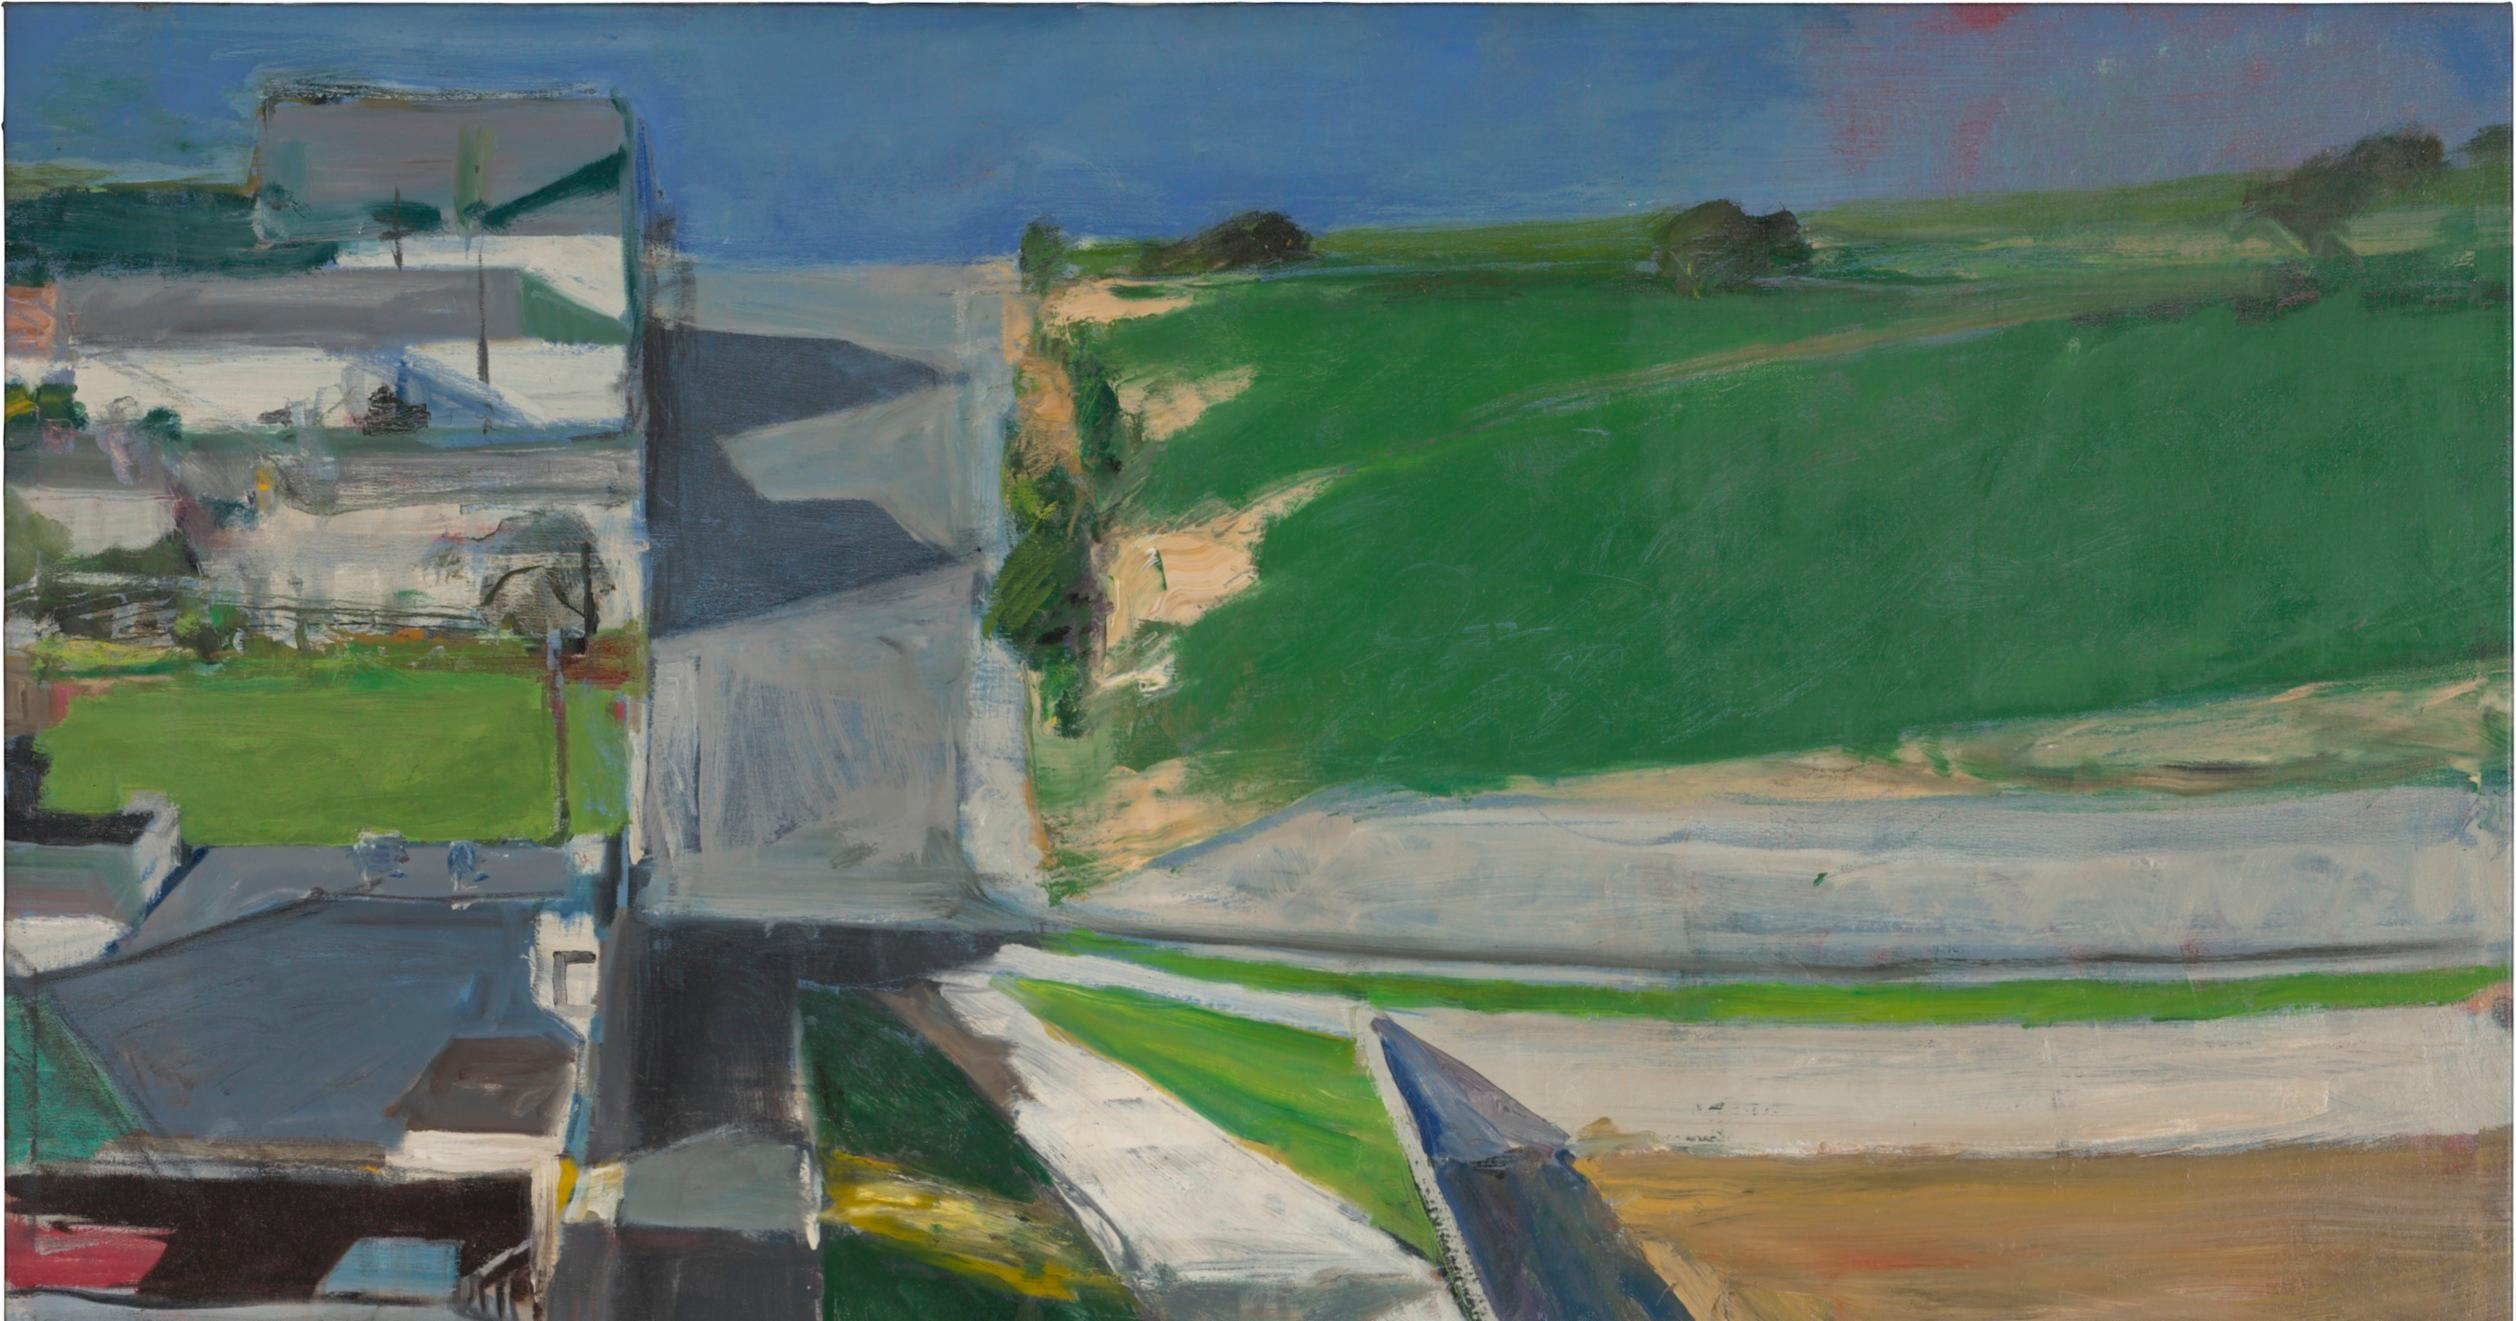 Richard Diebenkorn Brought California Light to Abstract Expressionism